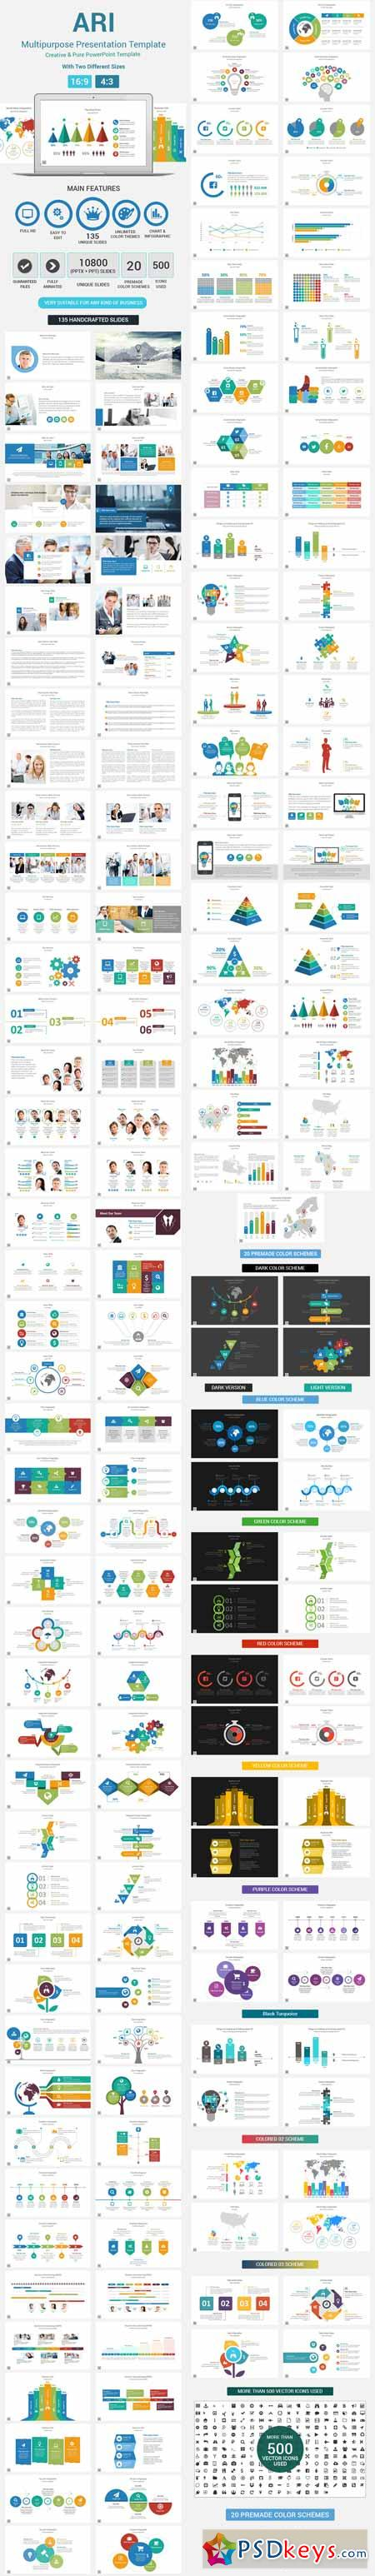 Ari PowerPoint Presentation Template 10447782